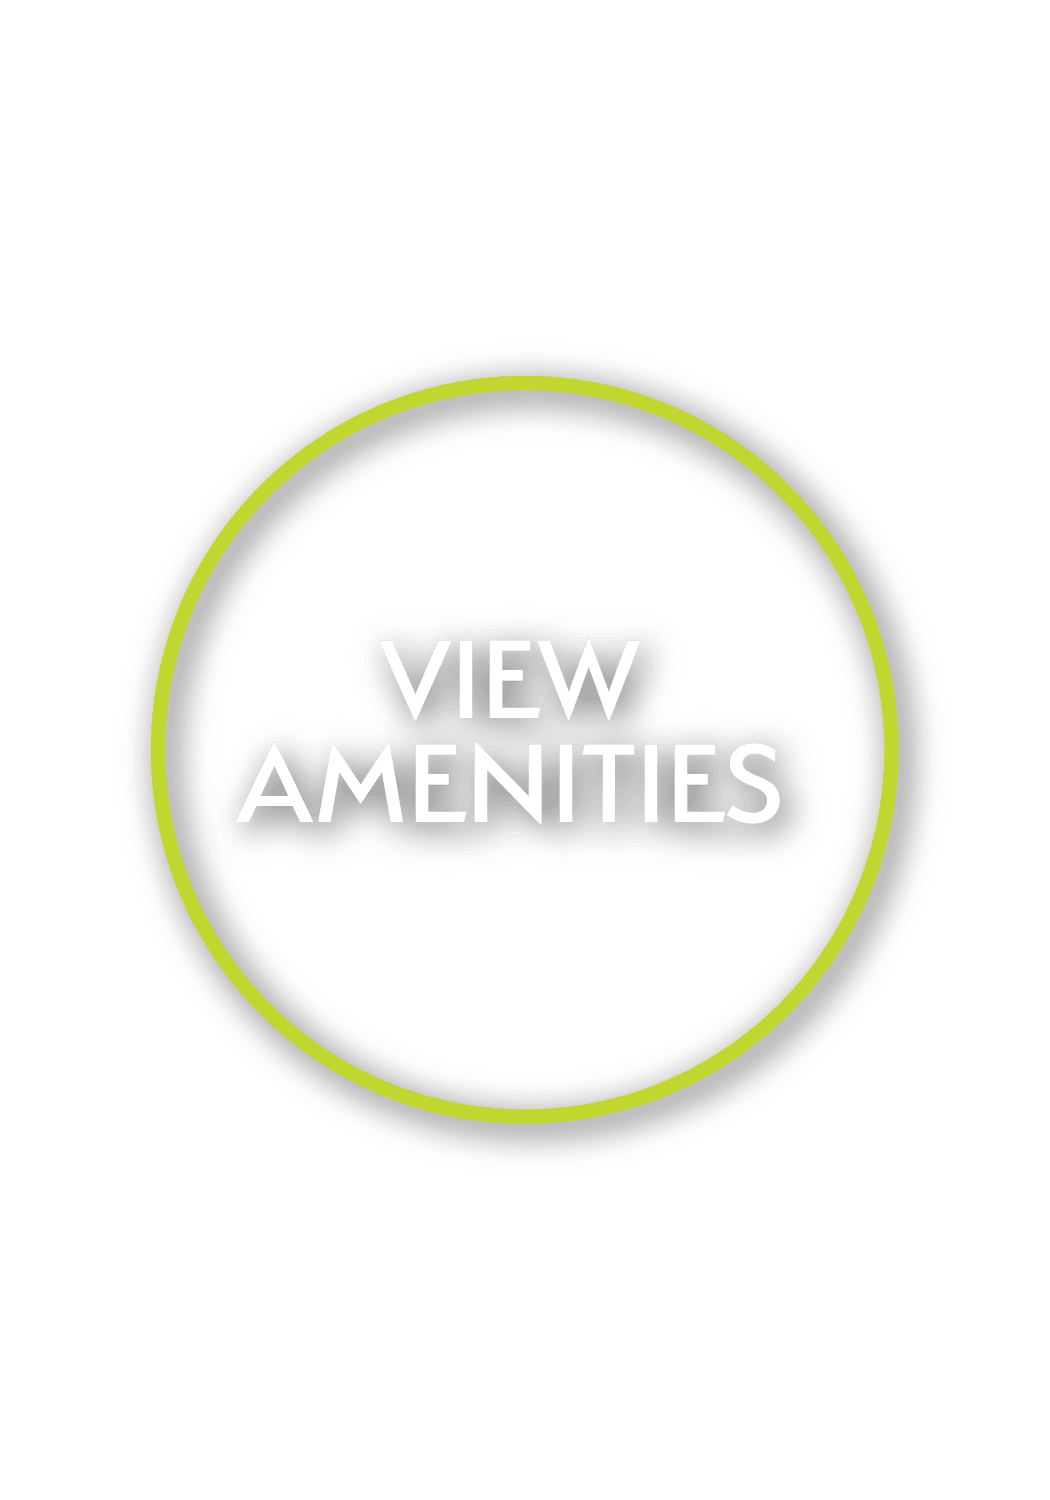 View amenities at Presley Oaks in Charlotte, North Carolina